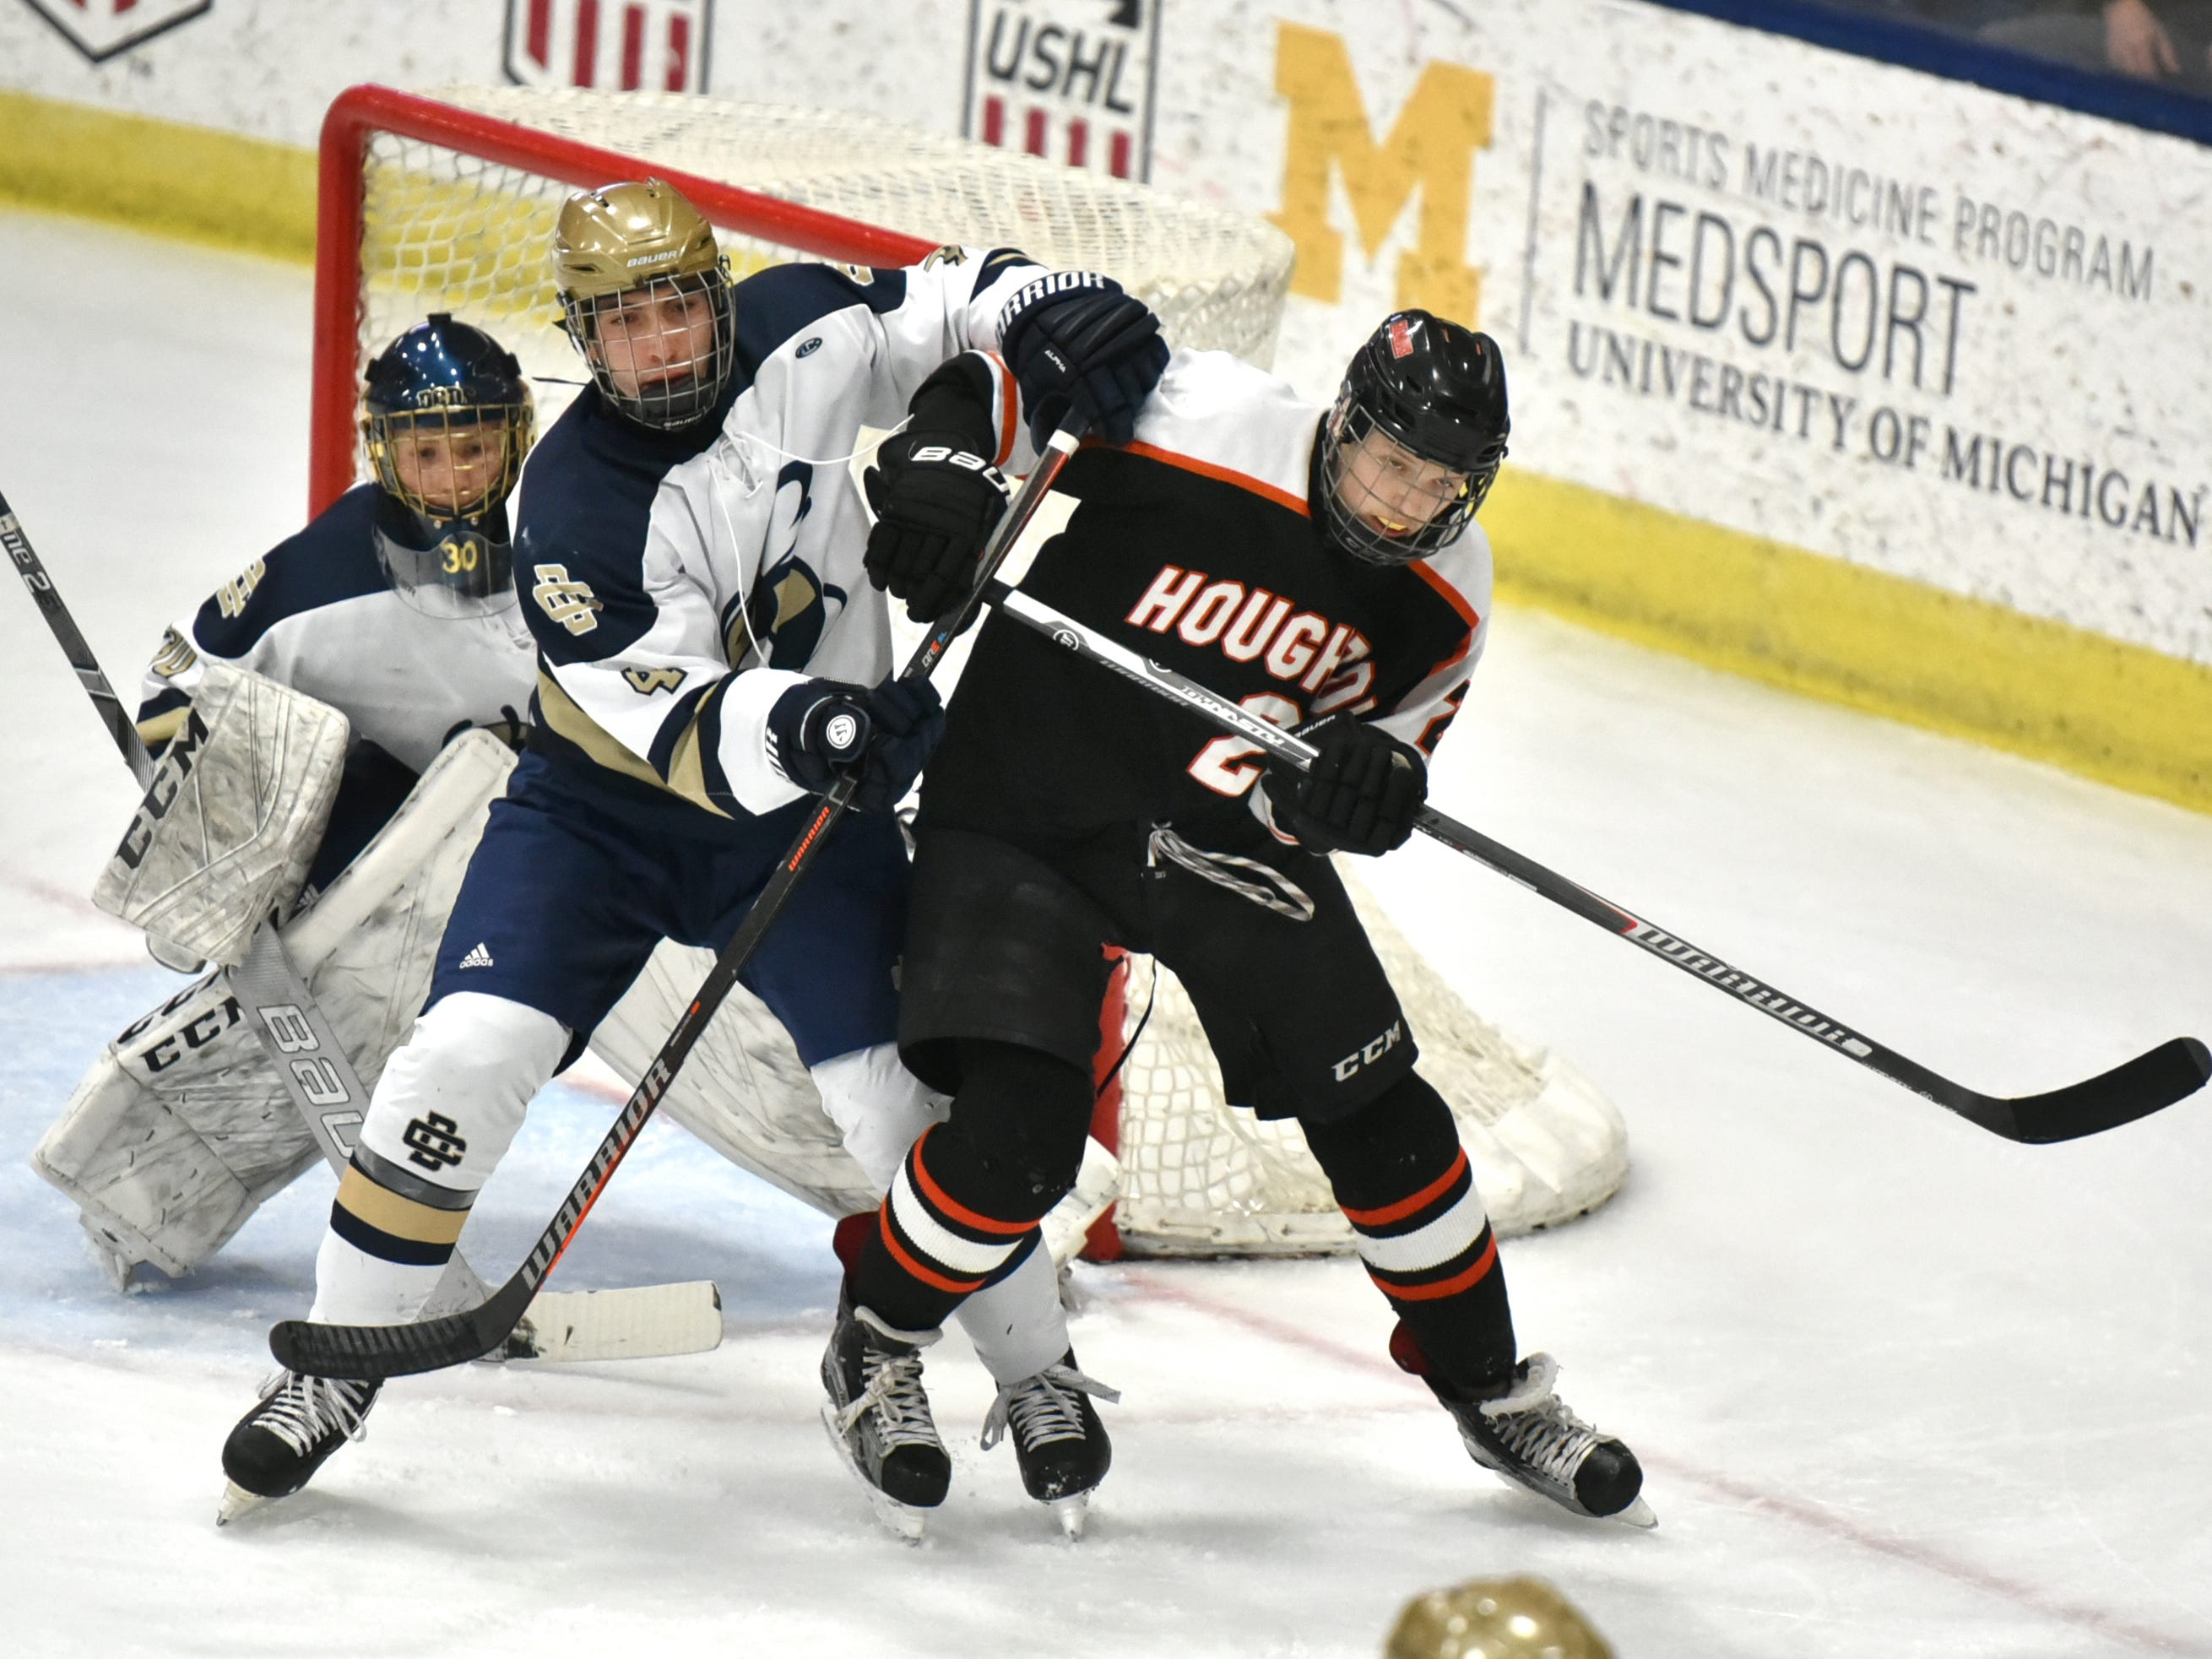 Detroit Country Day School defenseman Gino Sessa, center, tries to boot Houghton's Seth Francois out of the way of his goalie - Sam Evola during DCD's March state final MHSAA game at USA Hockey Arena in Plymouth, MI. Country Day won its second straight championship 4-1.